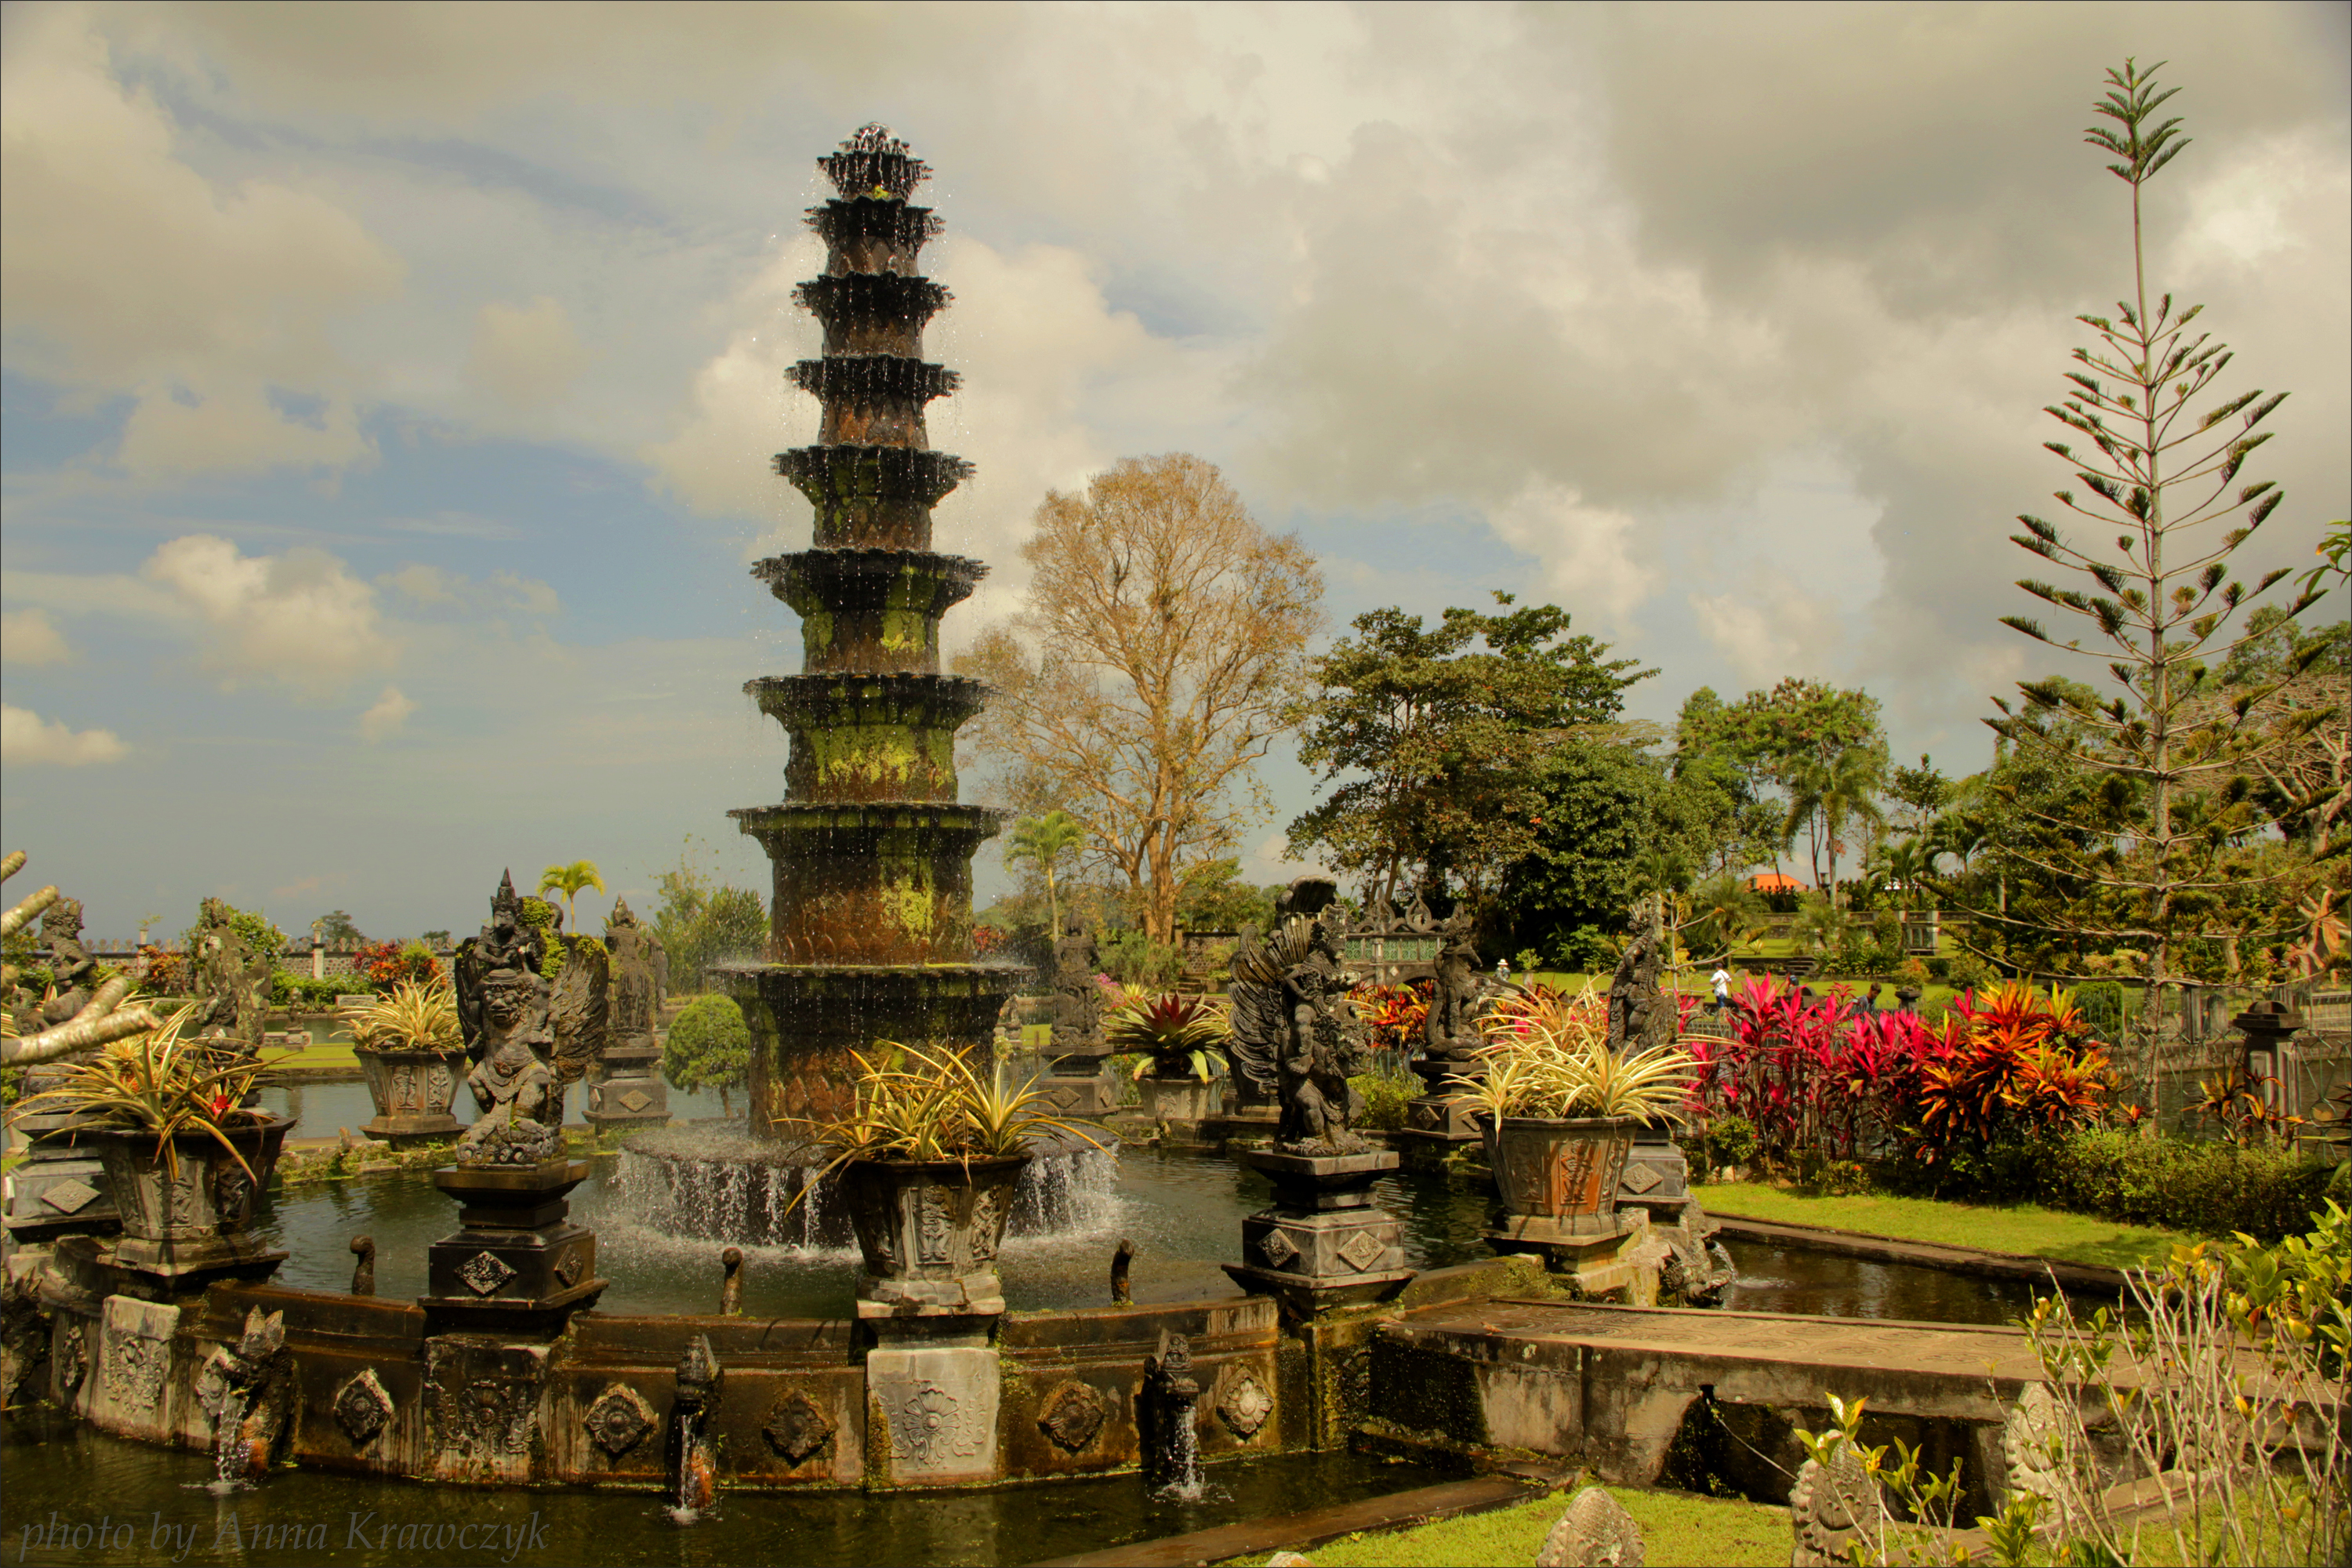 Unforgettable places in Bali you cannot miss if you love photography